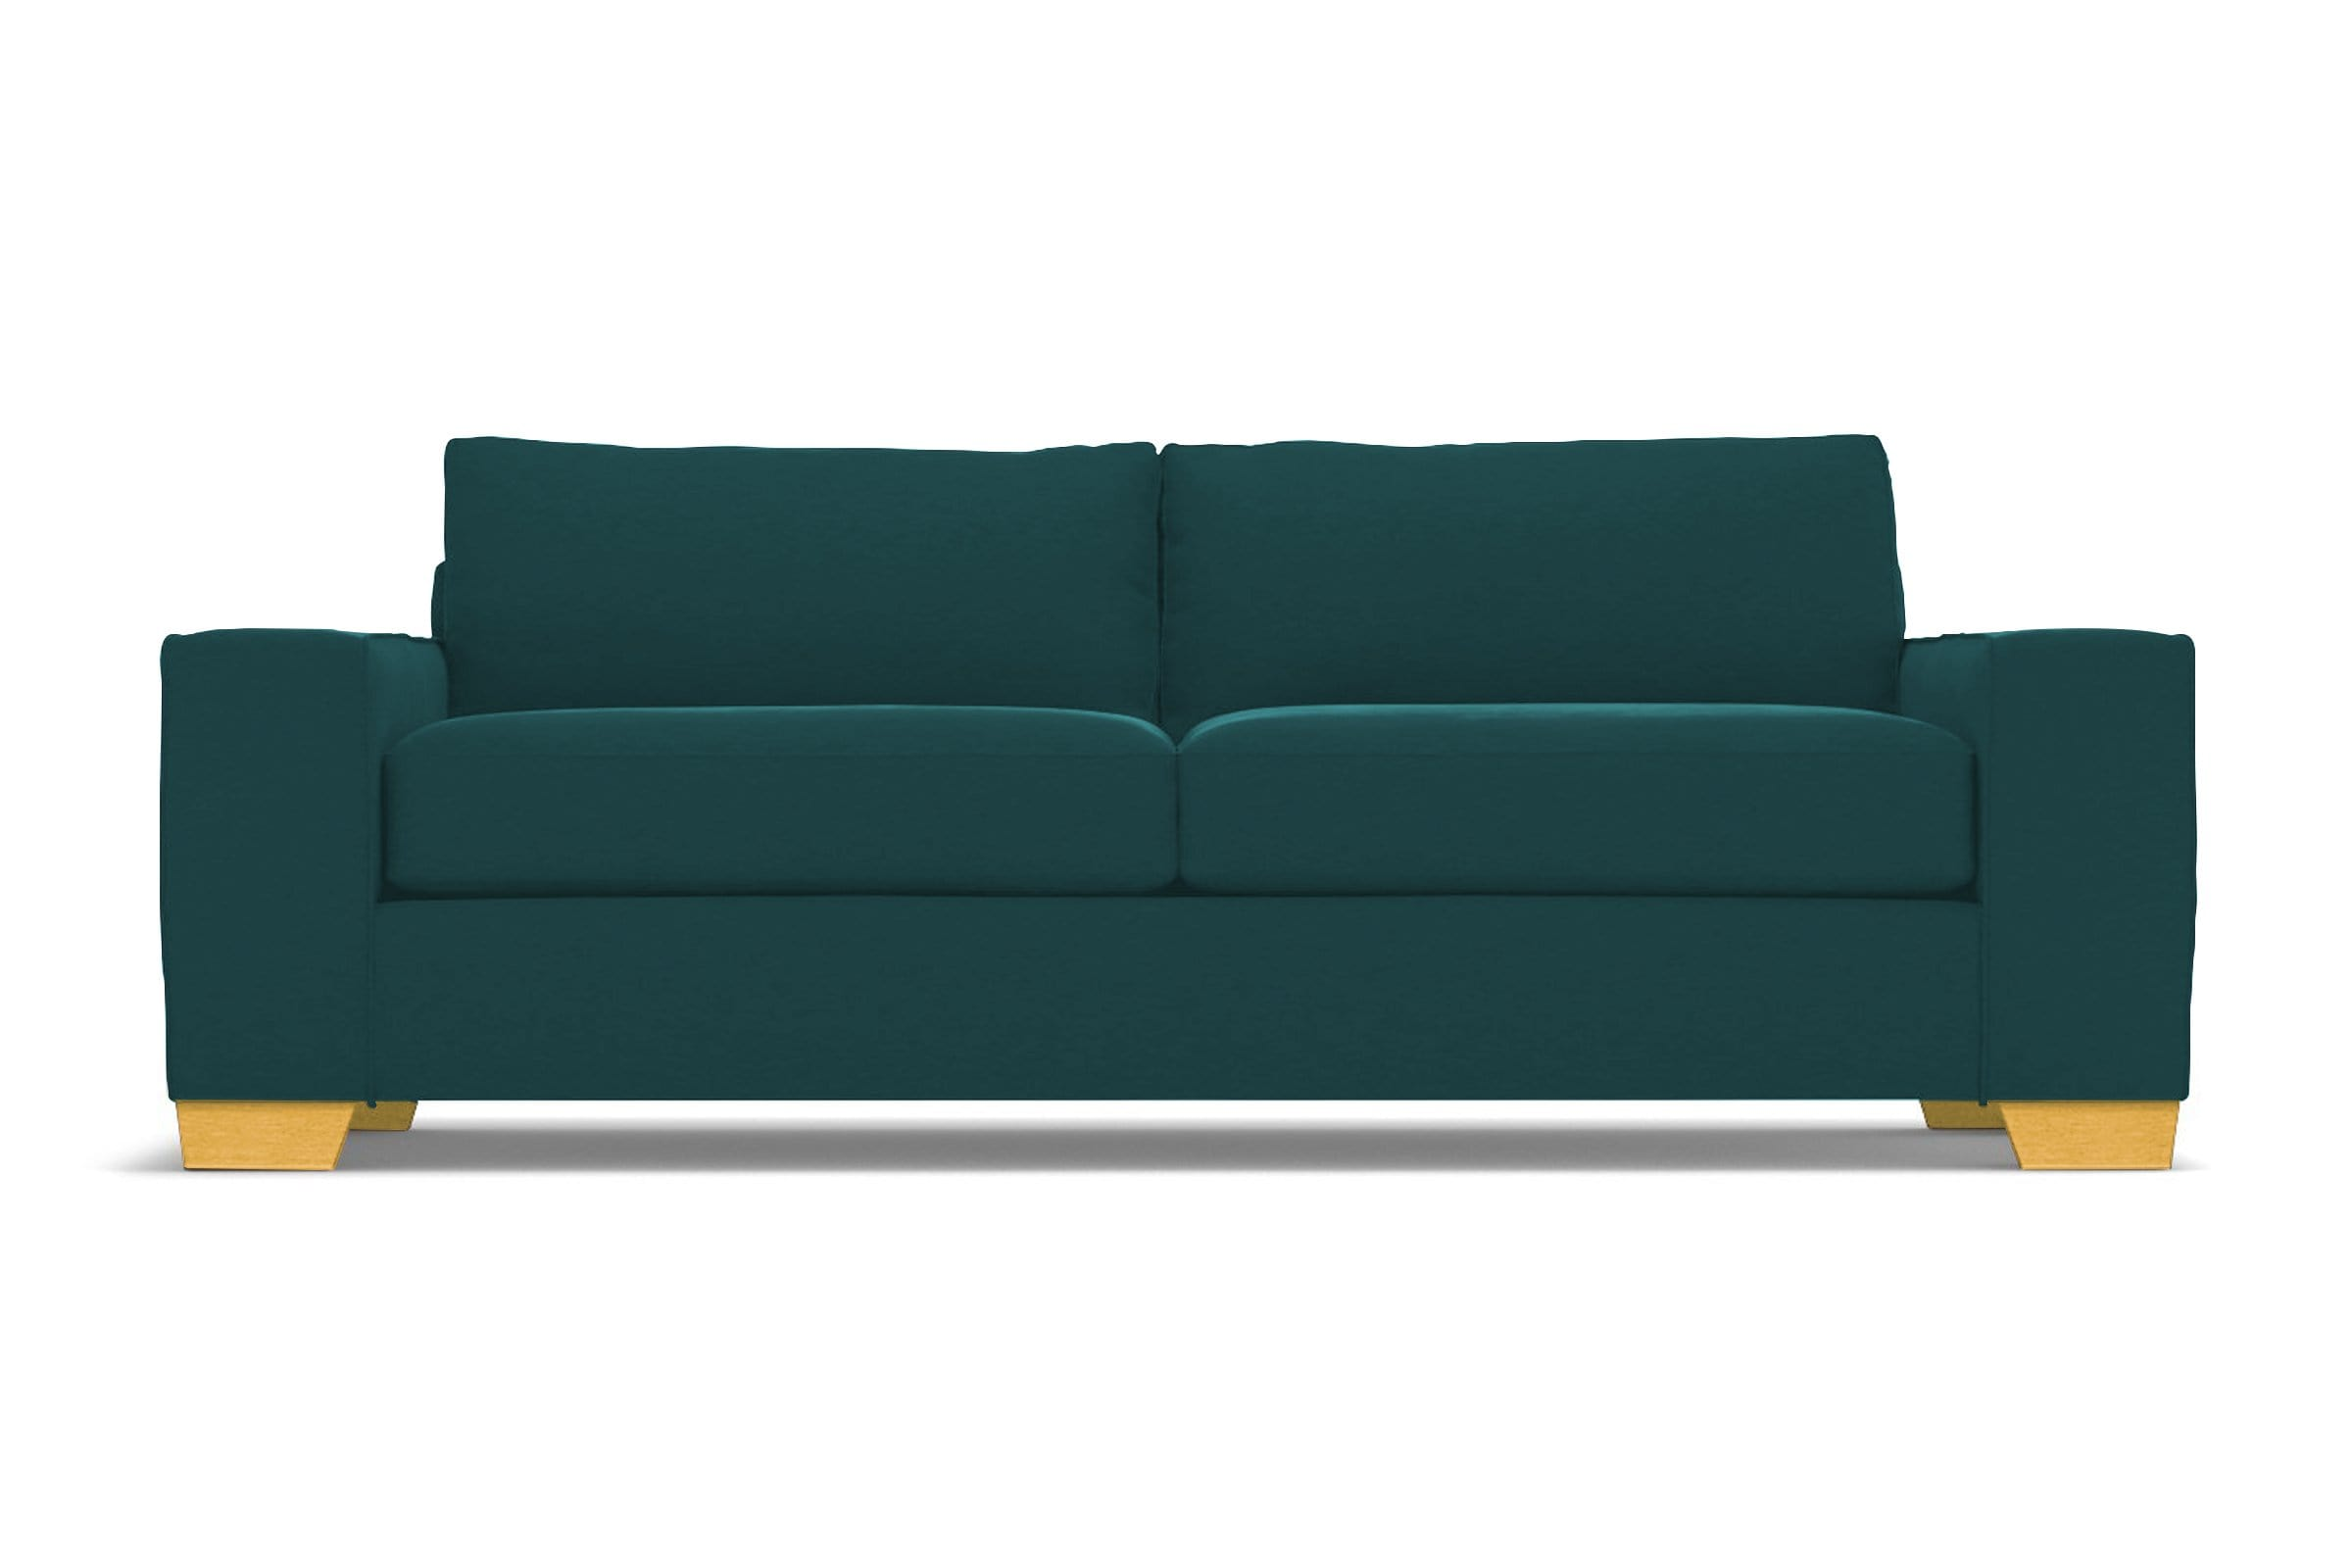 Melrose Sofa - Green Velvet - Modern Couch Made in the USA - Sold by Apt2B